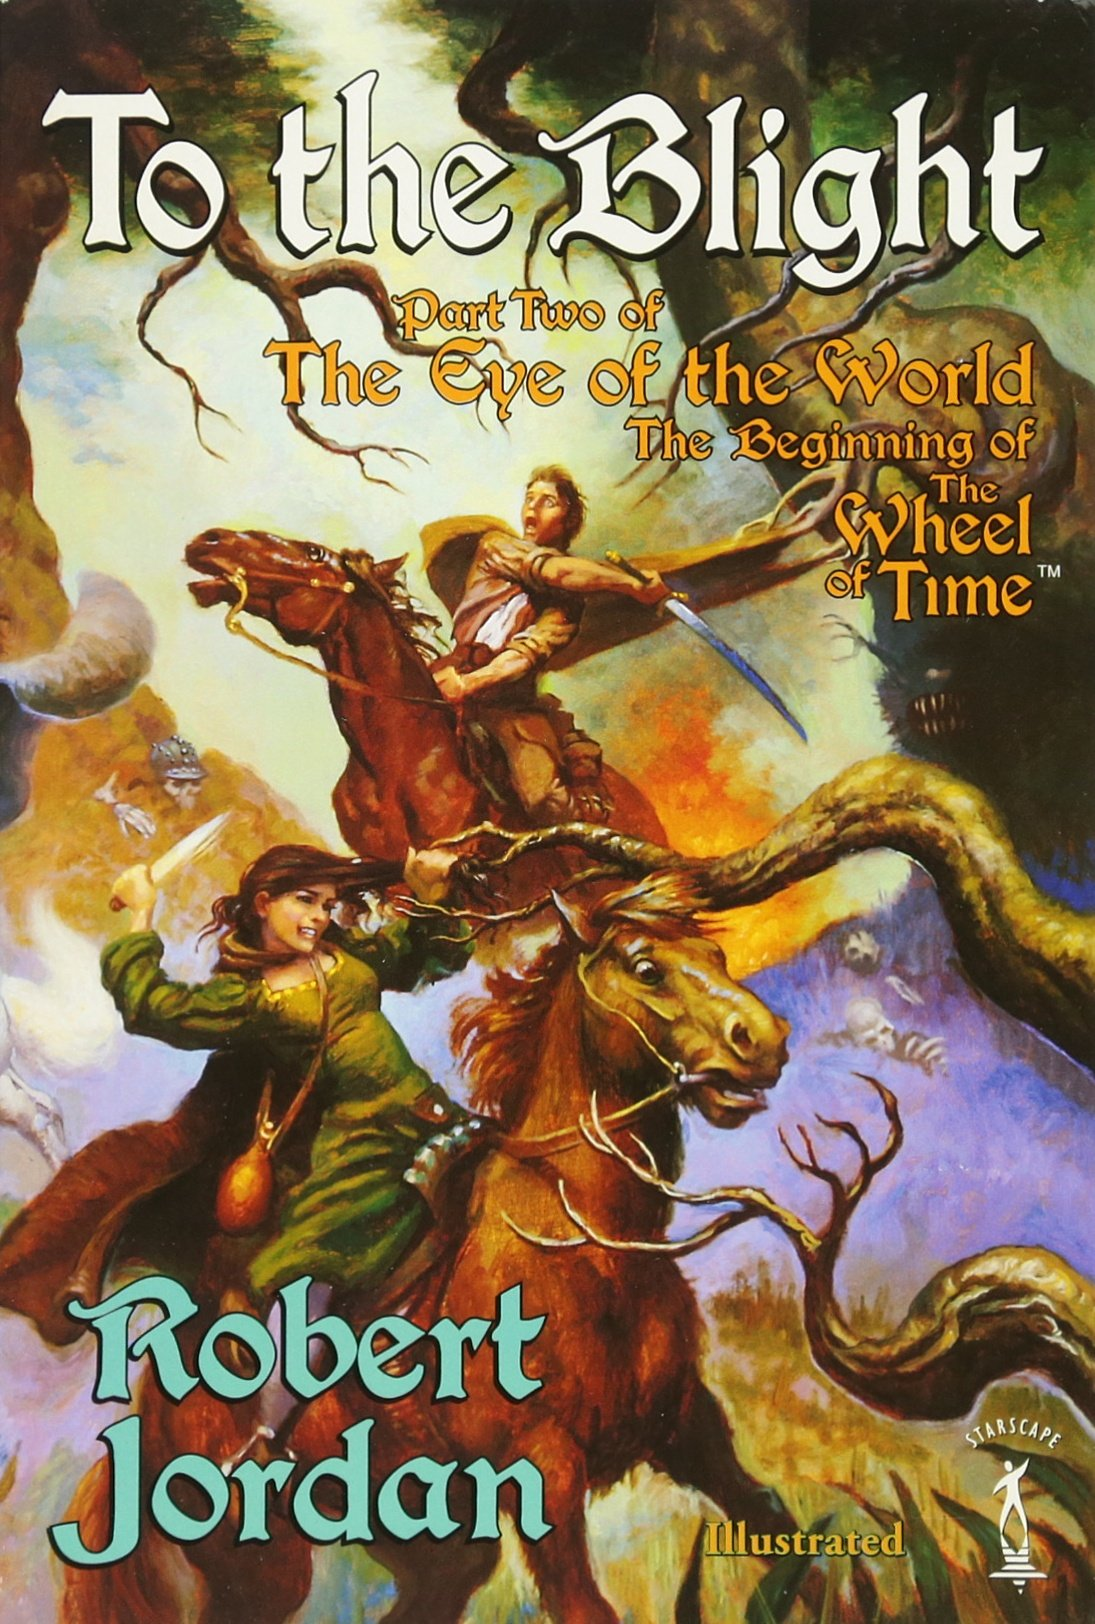 Download To the Blight (The Eye of the World, Book 2) pdf